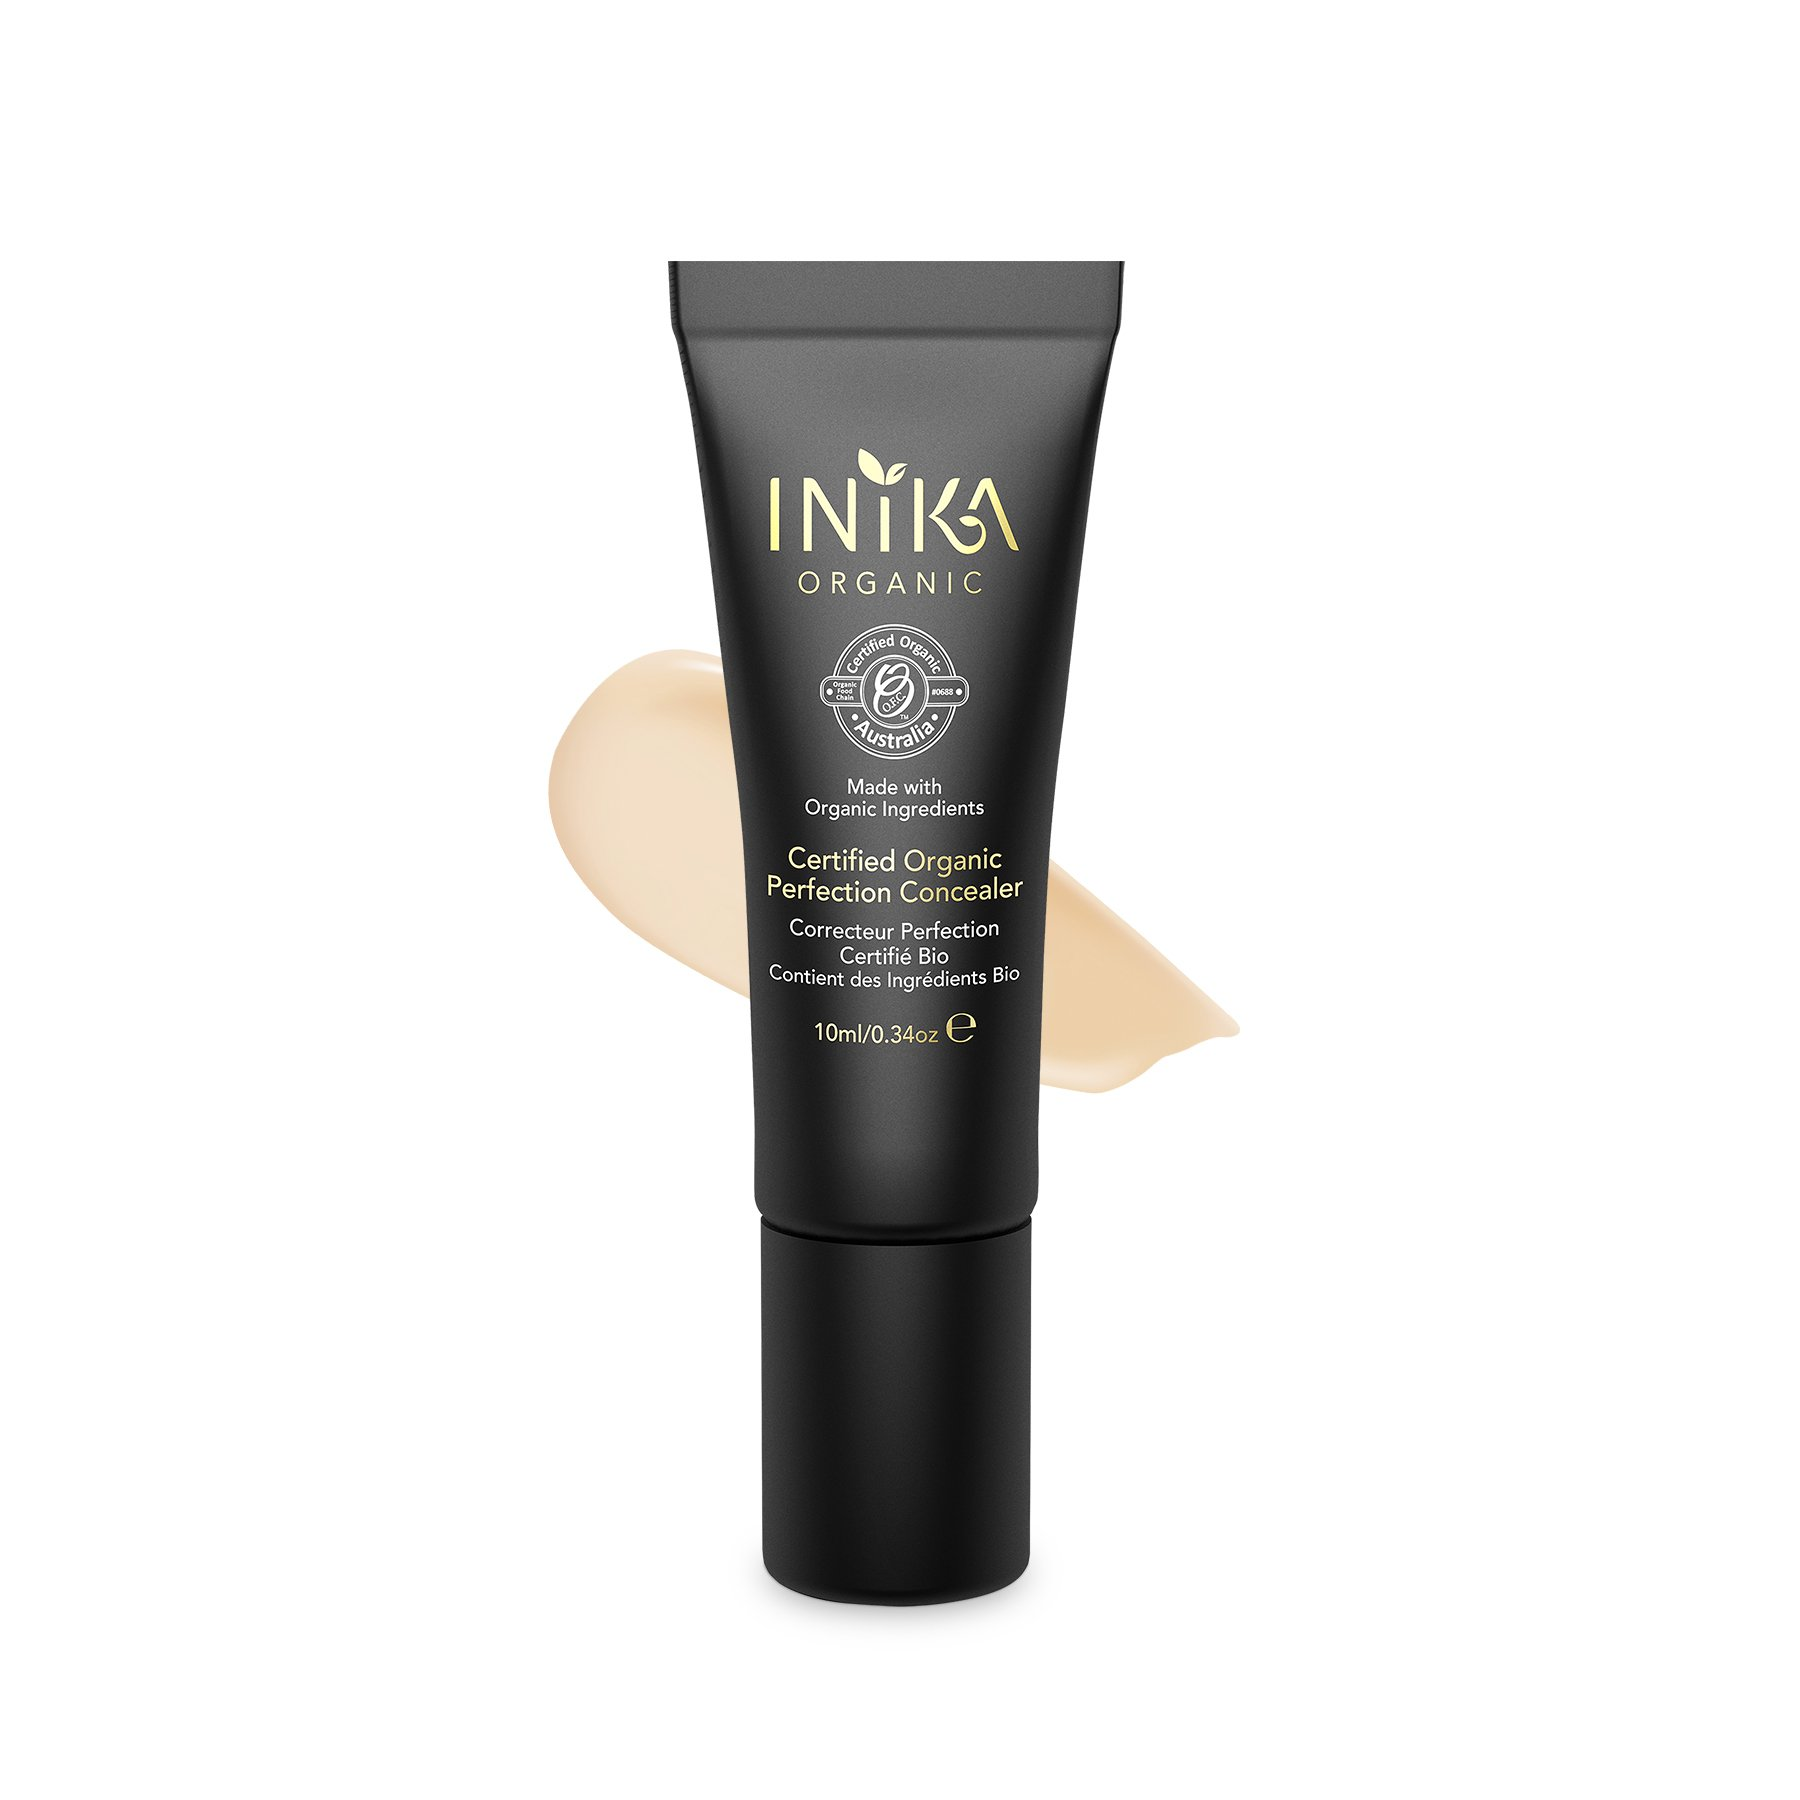 INIKA Certified Organic Perfection Concealer, All Natural Flawless Make-Up Base, Lightweight Formula, Hypoallergenic10 ml (Light)